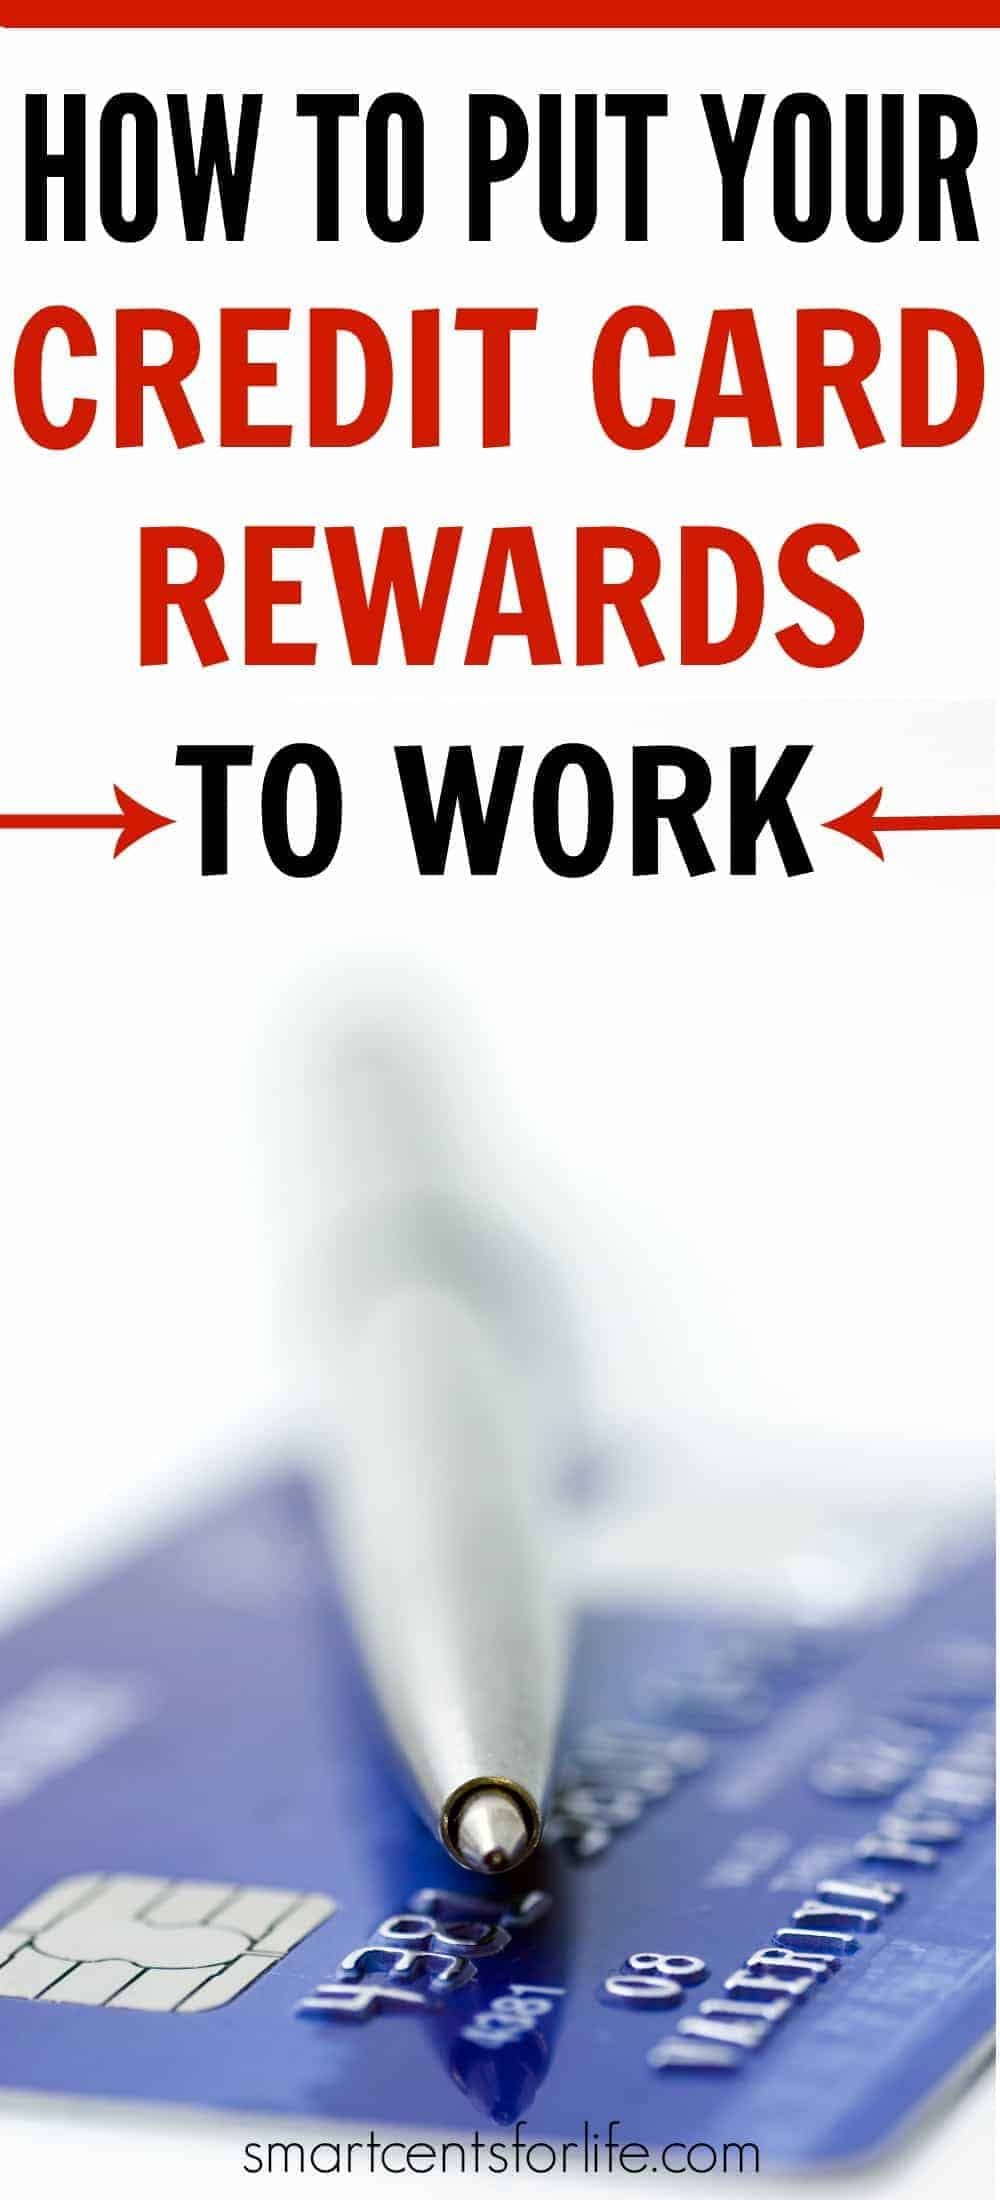 Credit card reward programs can be confusing. These tips will help you to know more about how credit card rewards programs work and how to get the most out of them! Use your credit card rewards points, miles or cash back to travel, presents, purchases or for your dream vacation.